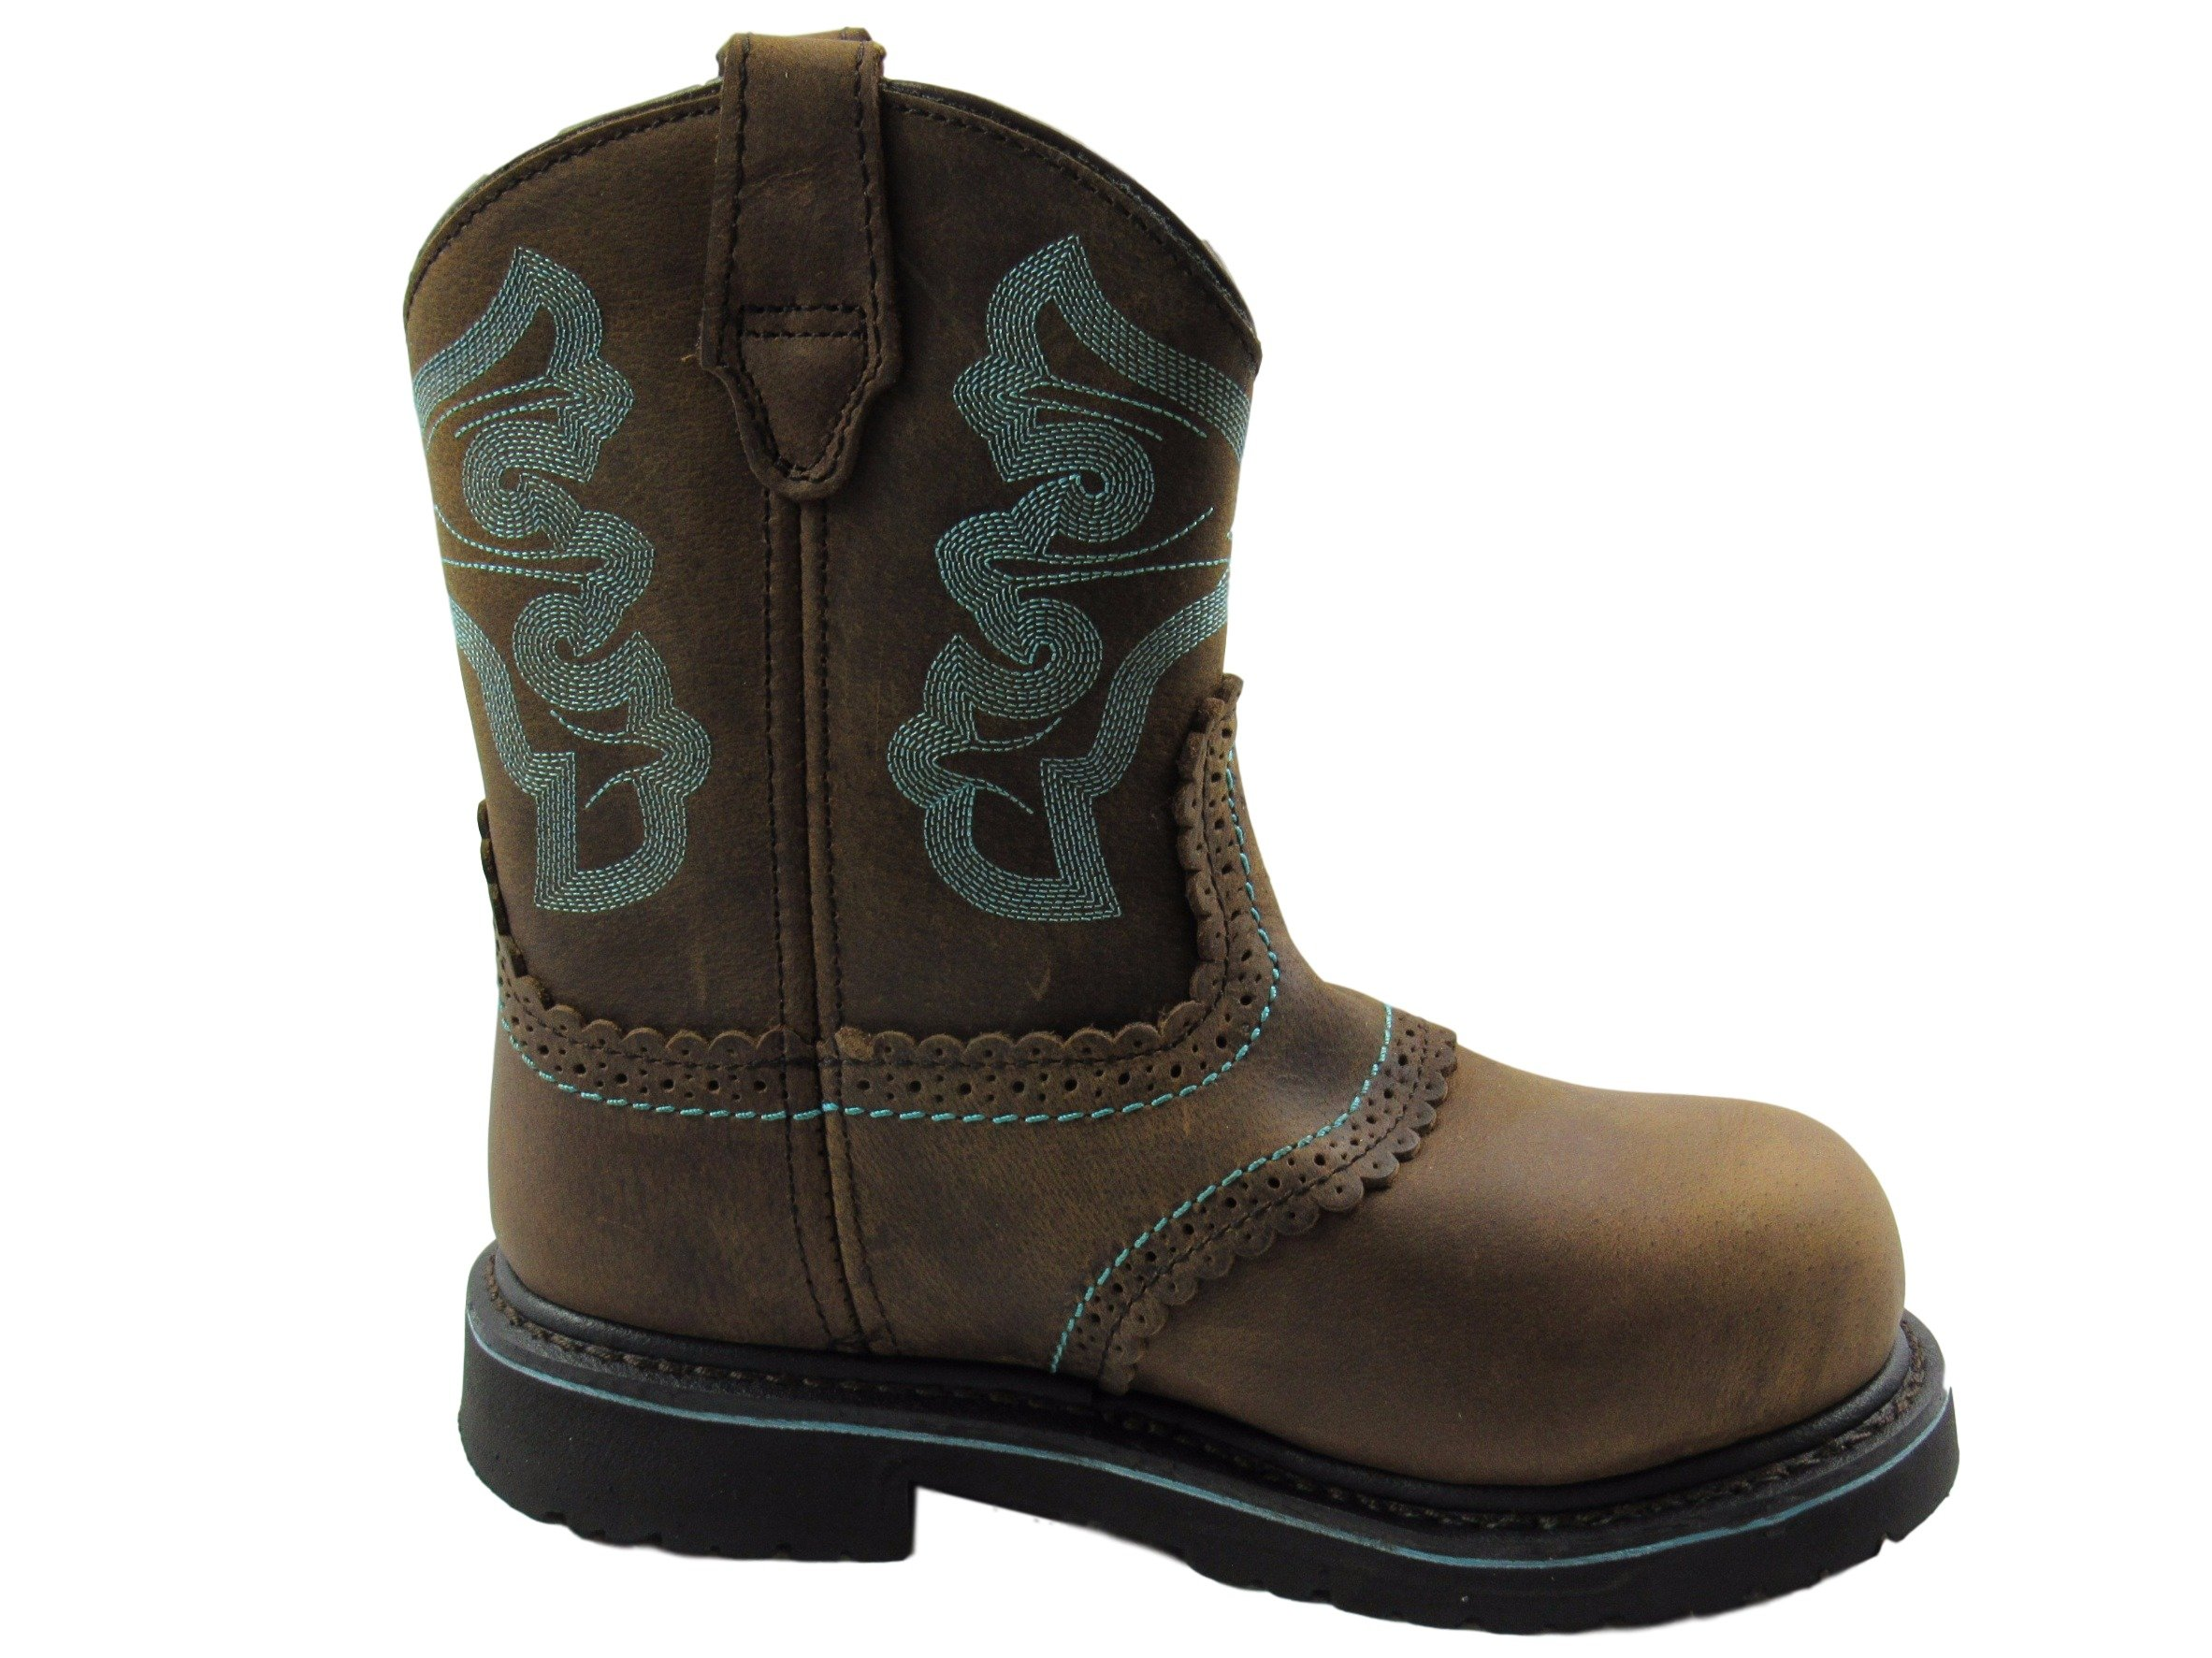 Hytest Womens Western Wellington Steel Toe, Electric Hazard, Non-Slip Safety Boot (6.5 W, Brown/Blue Accent) by Wolverine